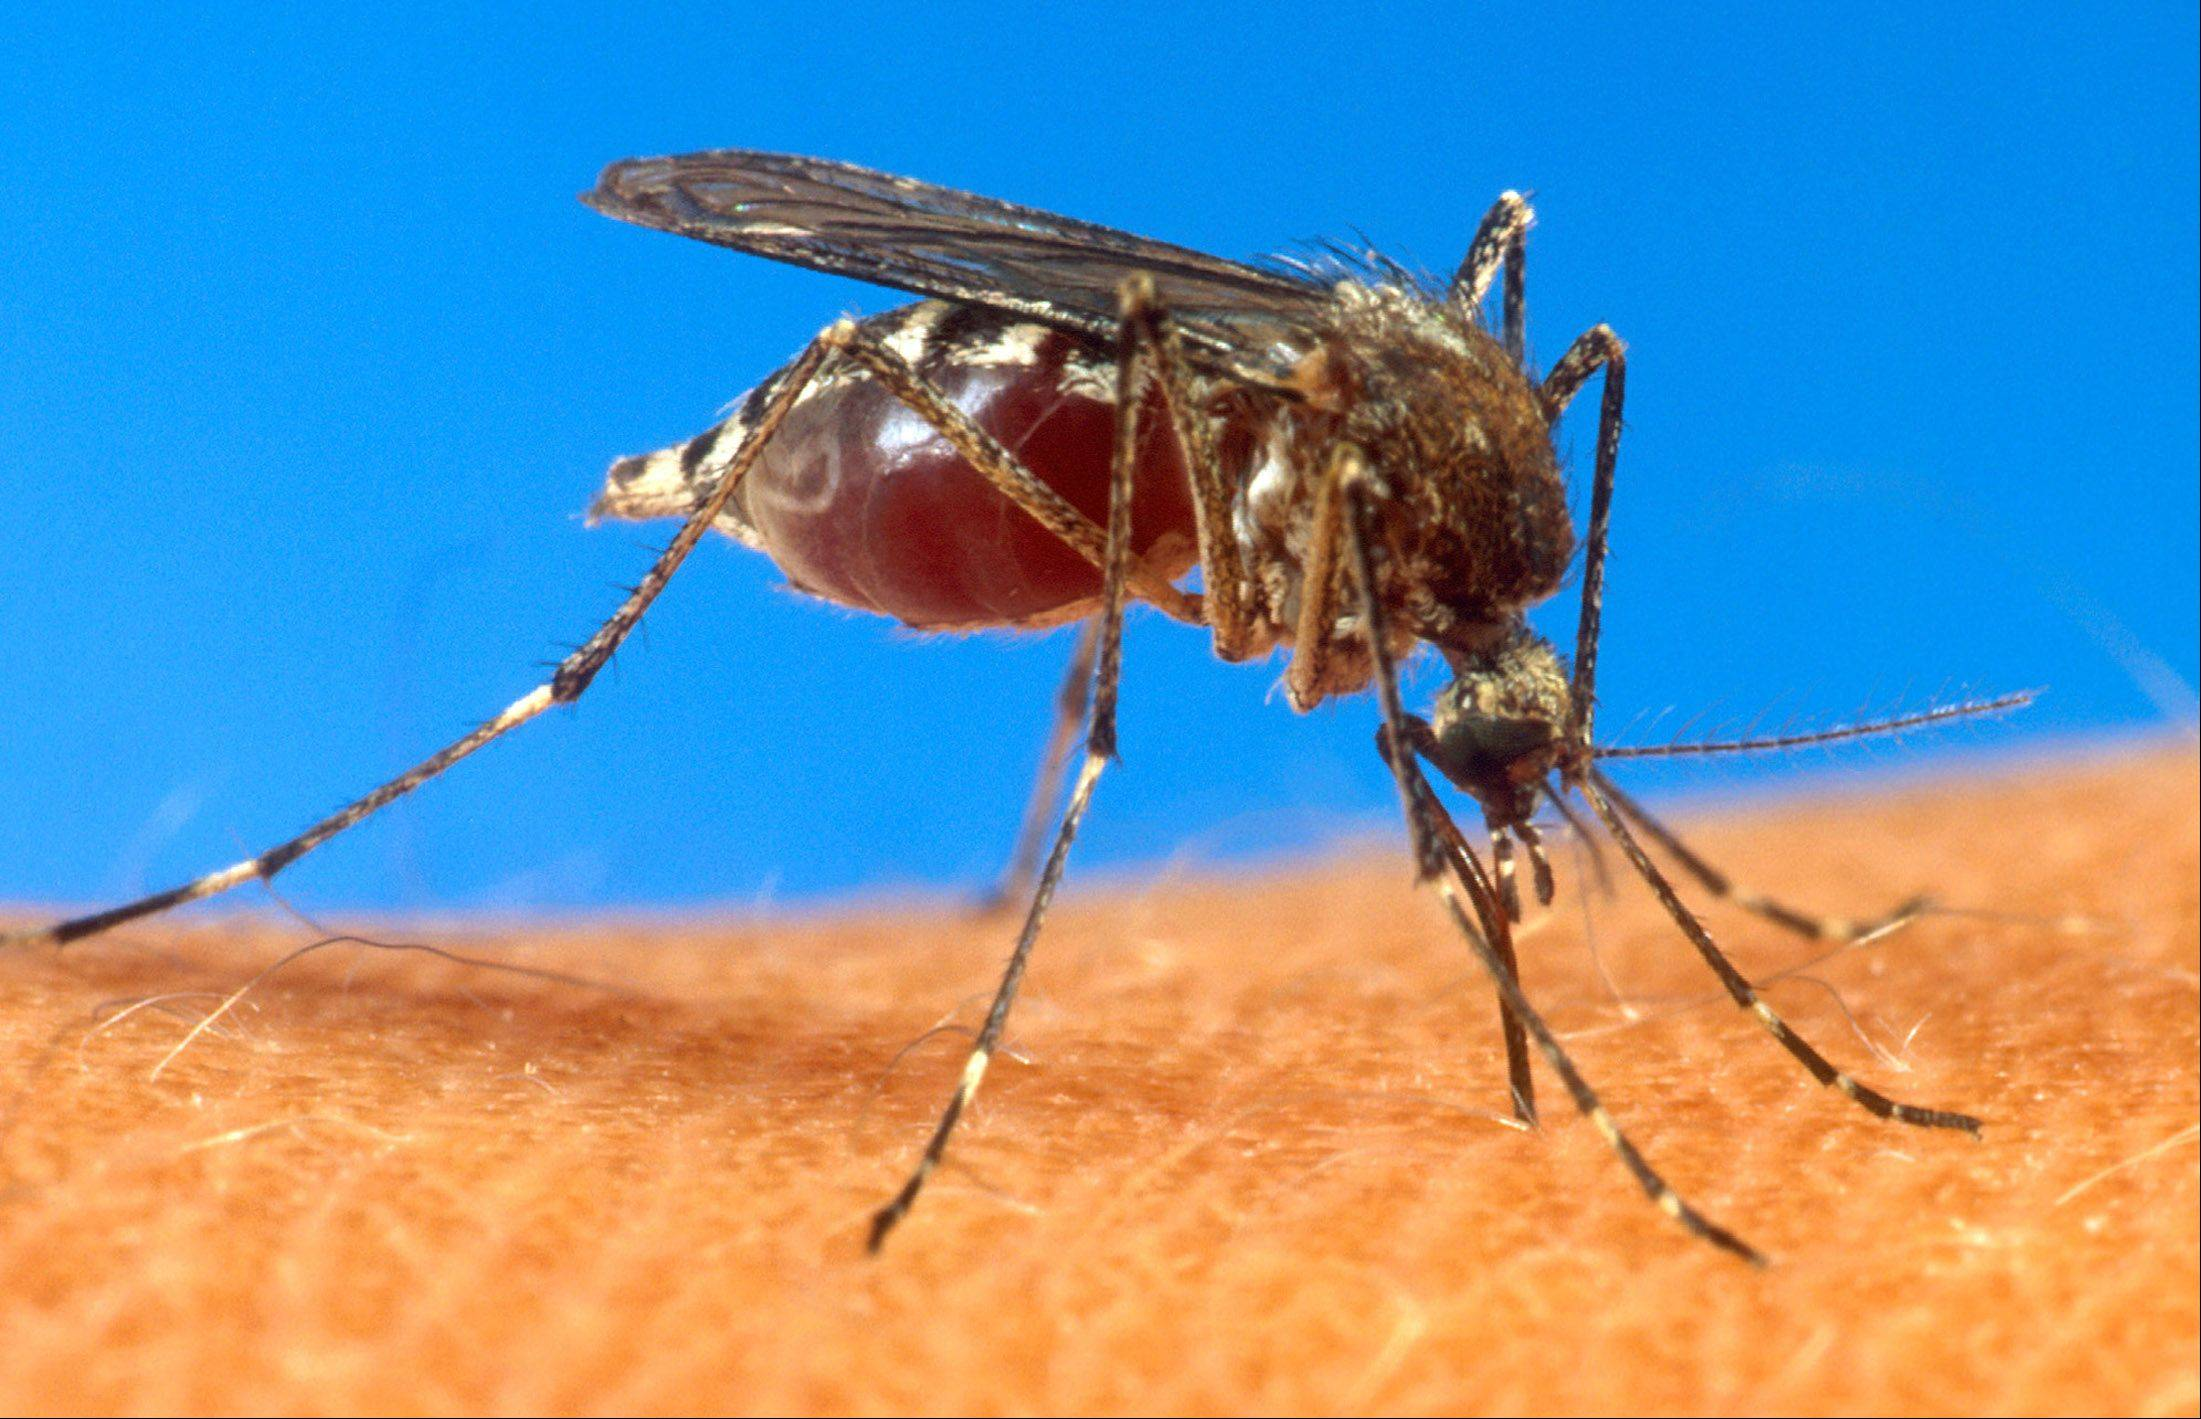 An aedes aegypti mosquito is shown on human skin in a file photo, date and location not known, from the U.S. Department of Agriculture.